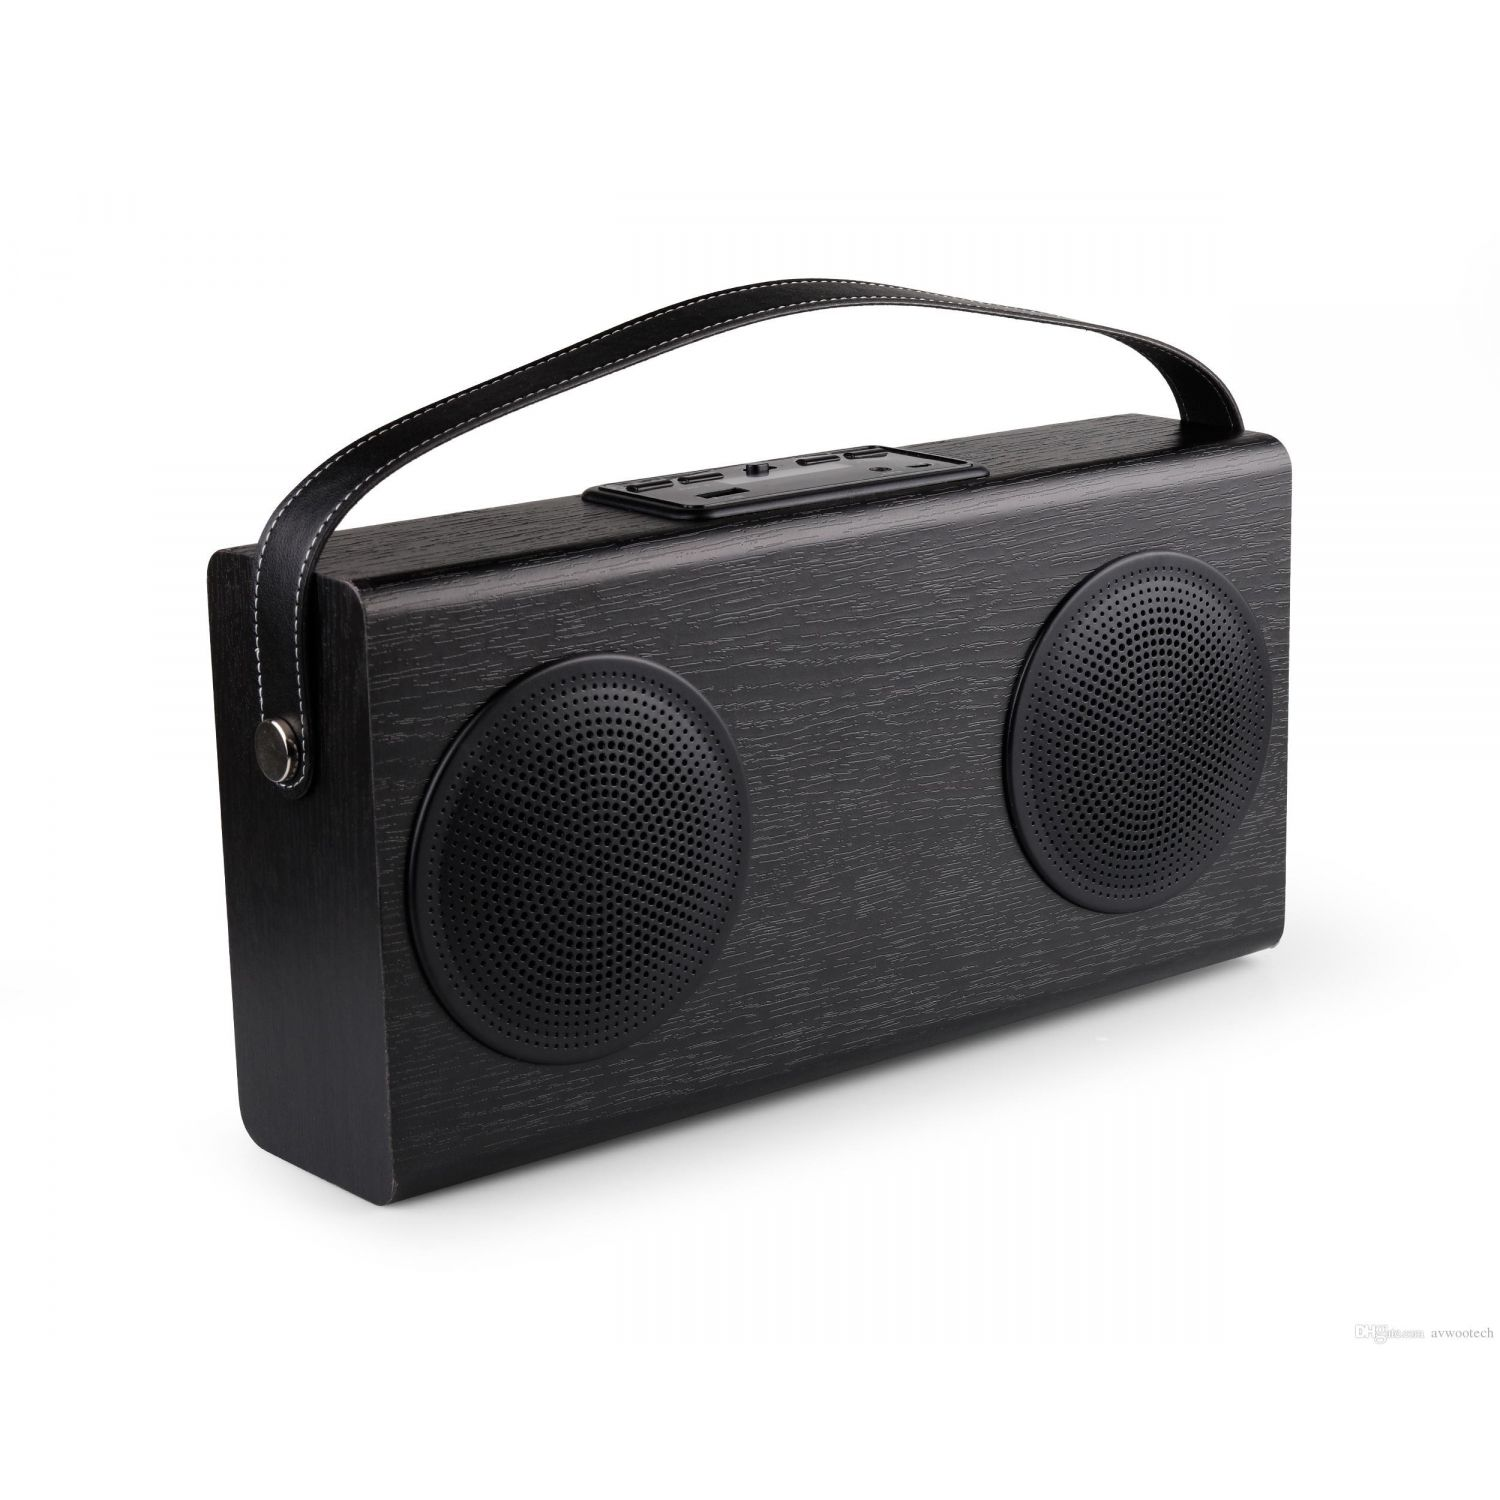 enceinte connect e design r tro bluetooth et radio fm avwoo en bois noir. Black Bedroom Furniture Sets. Home Design Ideas